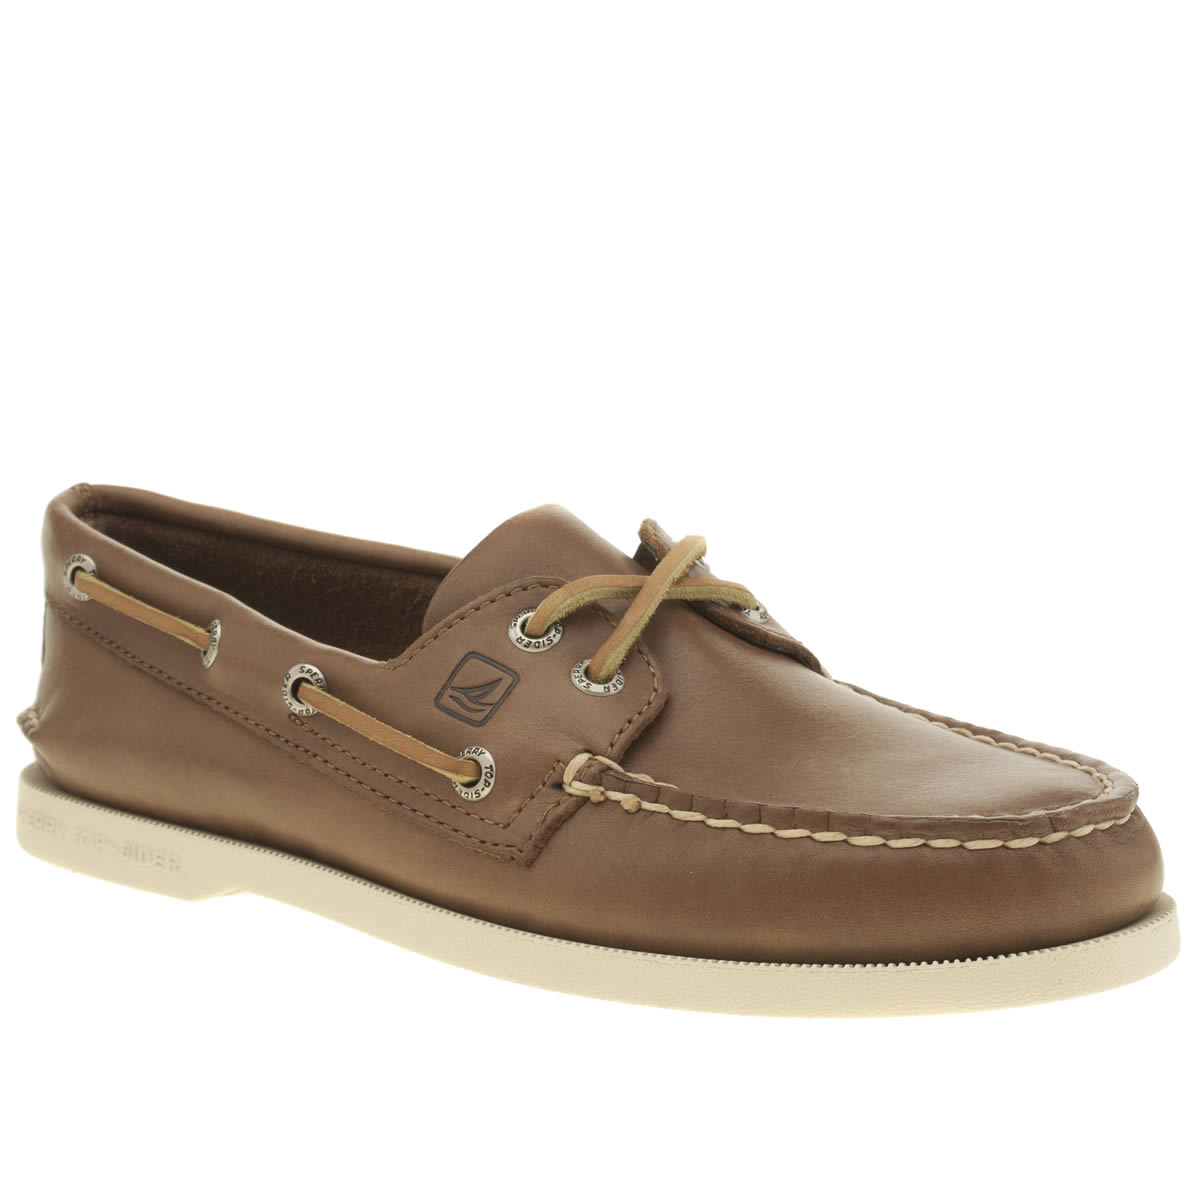 Sperry Sperry Brown A/o 2-eye Boat Shoes